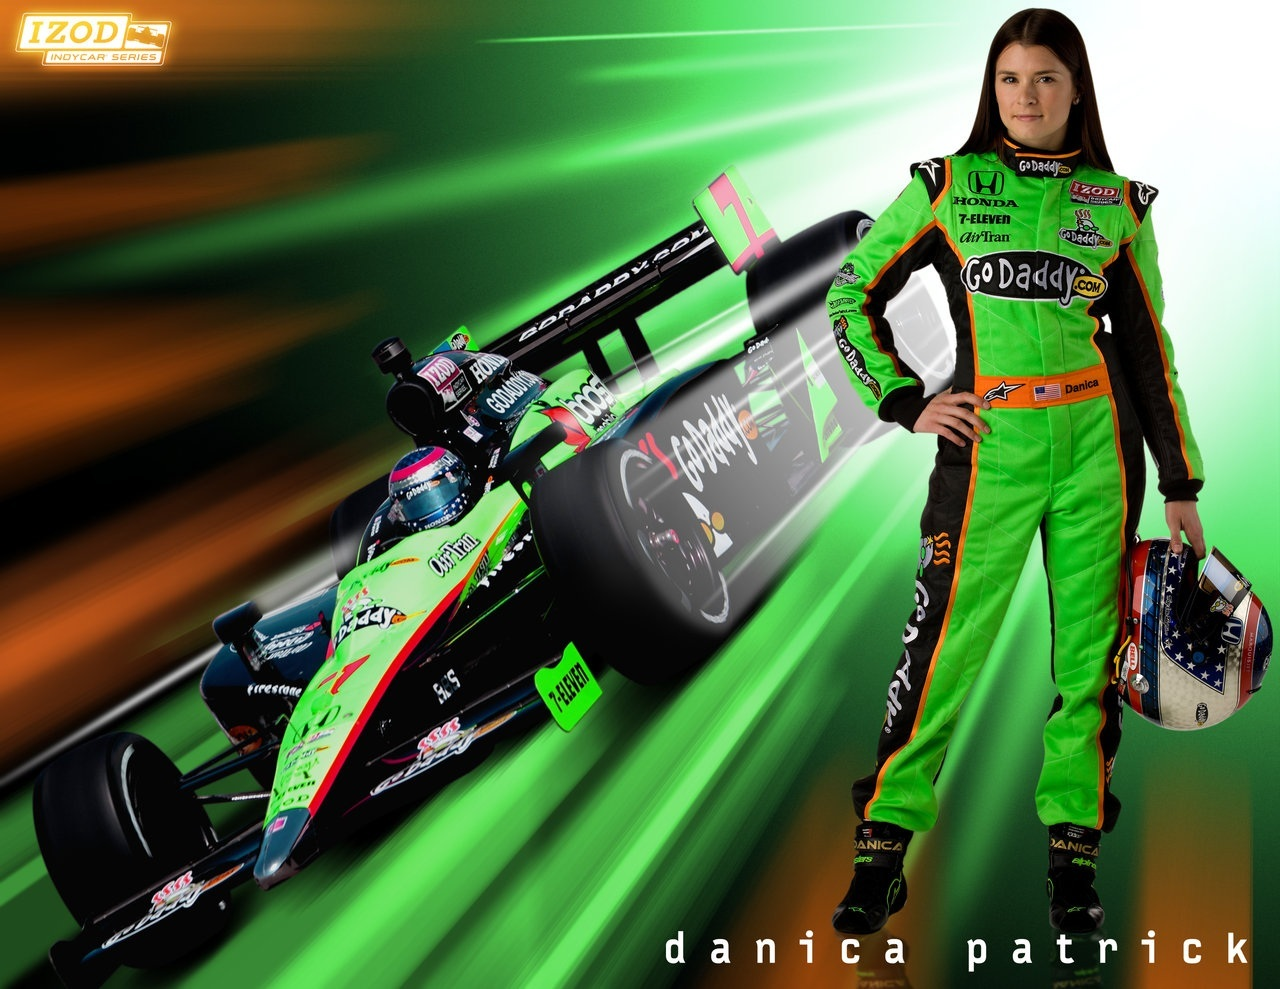 Danica Patrick Wallpapers Danica Patrick Wallpapers Pack 1280x989